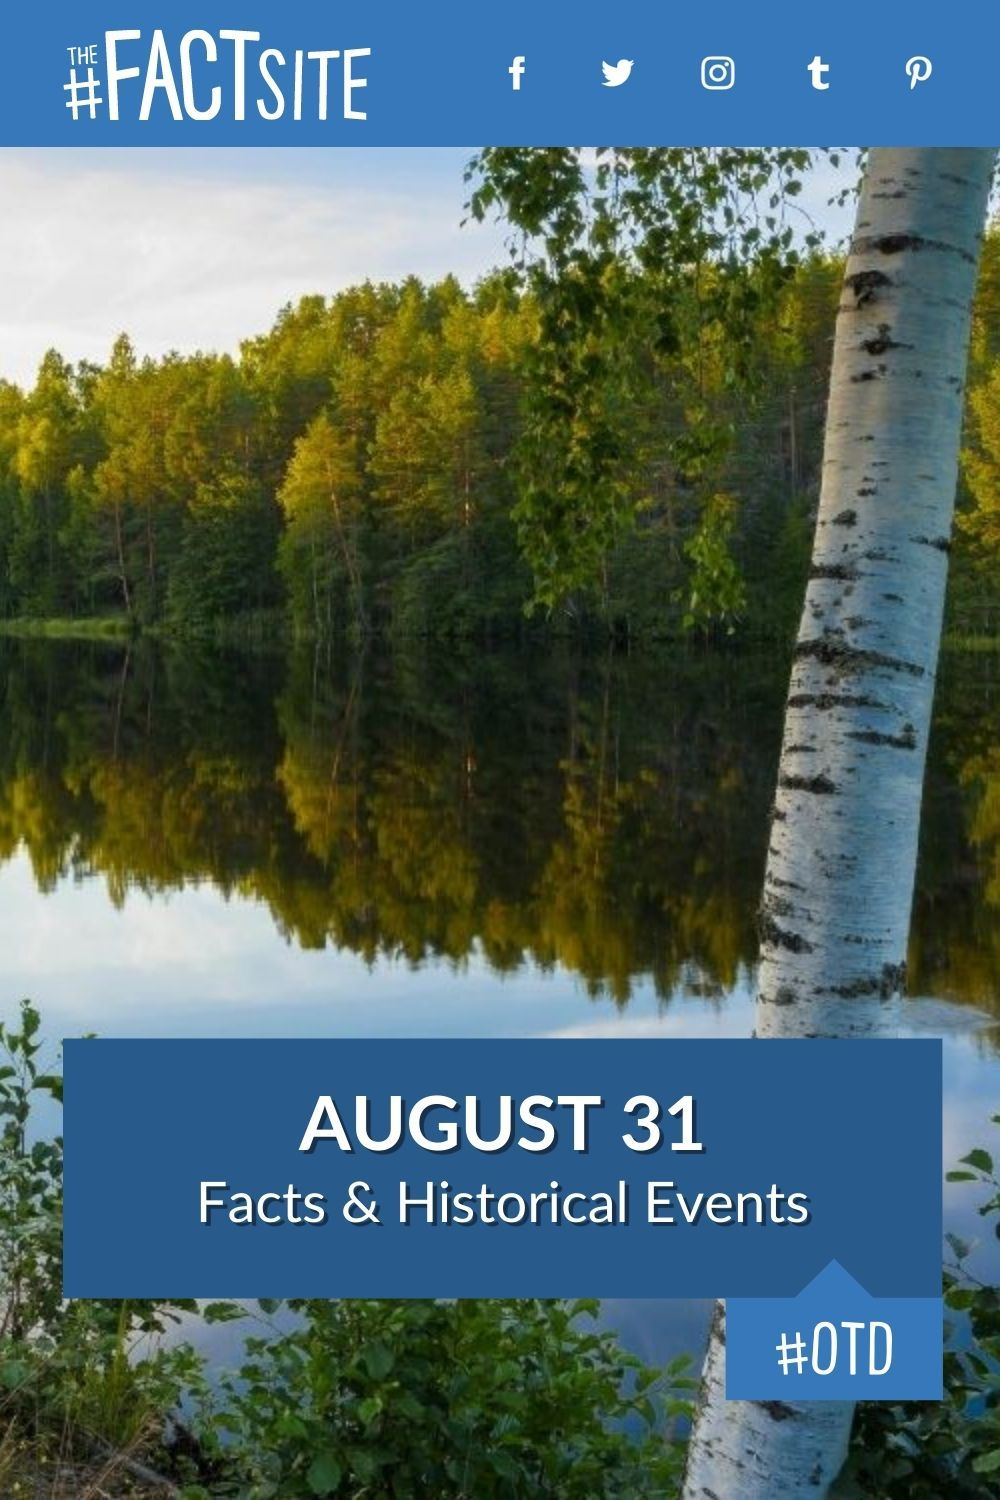 Facts & Historic Events That Happened on August 31